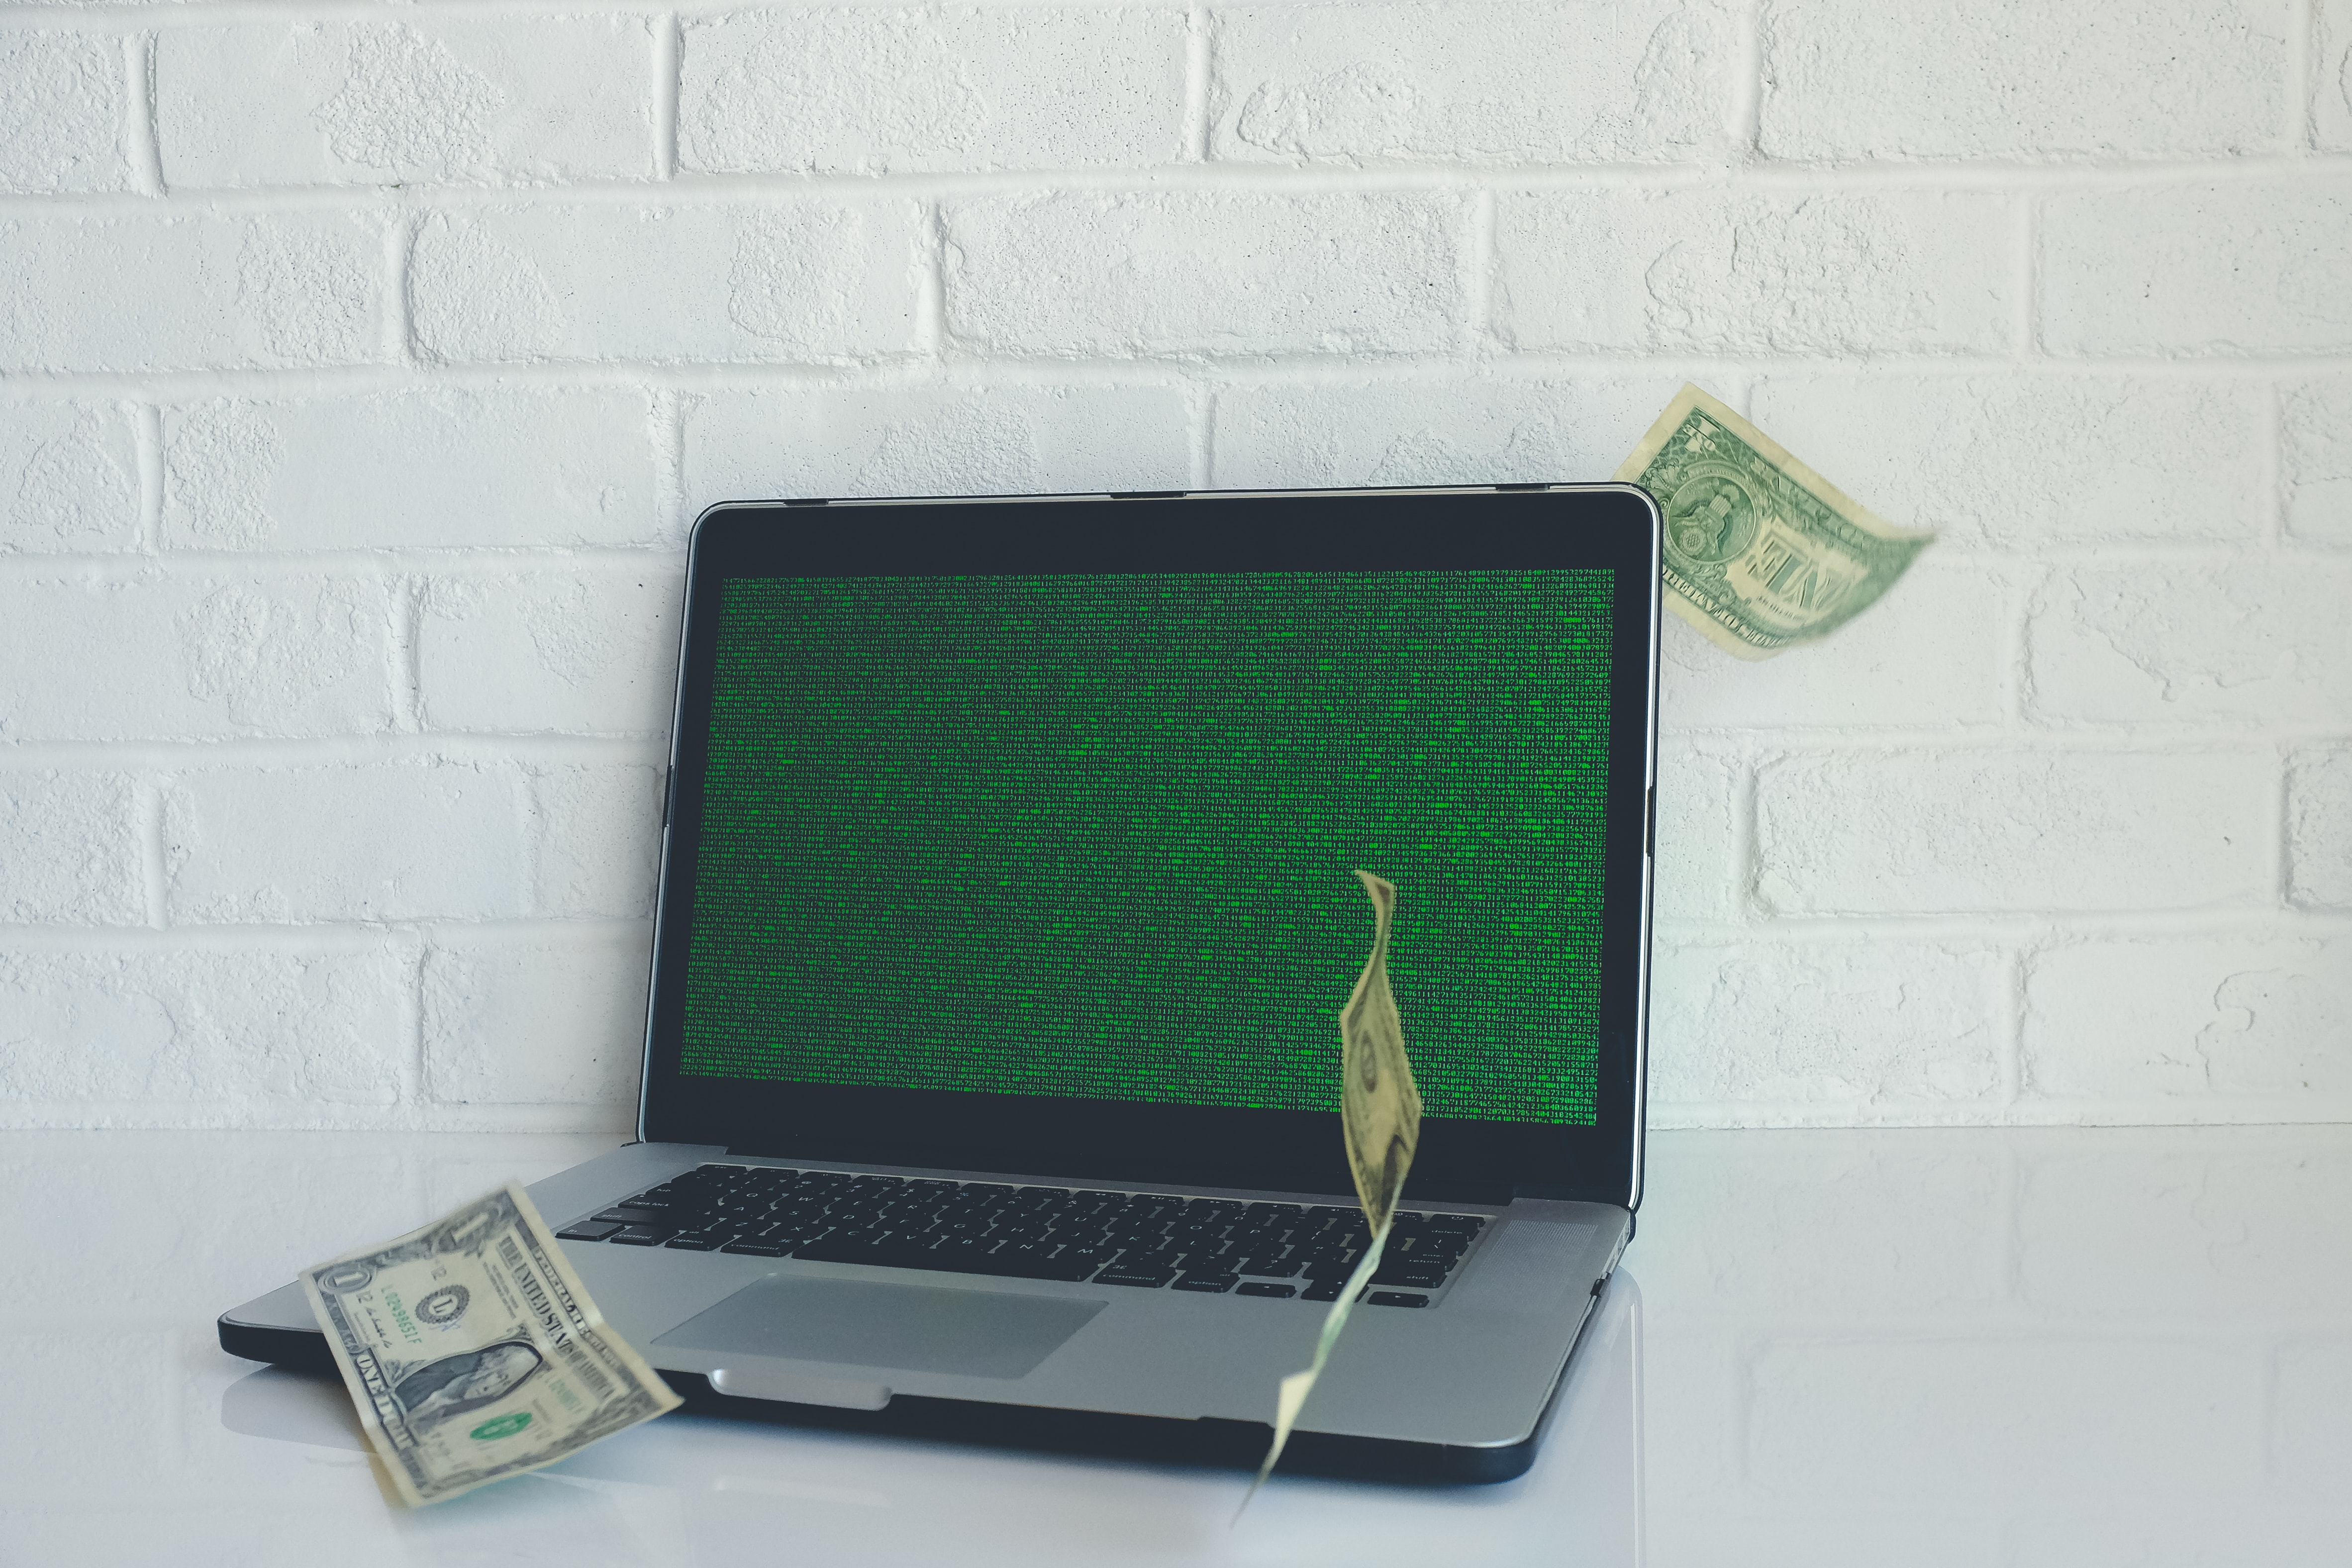 Money blows around a laptop, which is a pretty normal thing that happens.